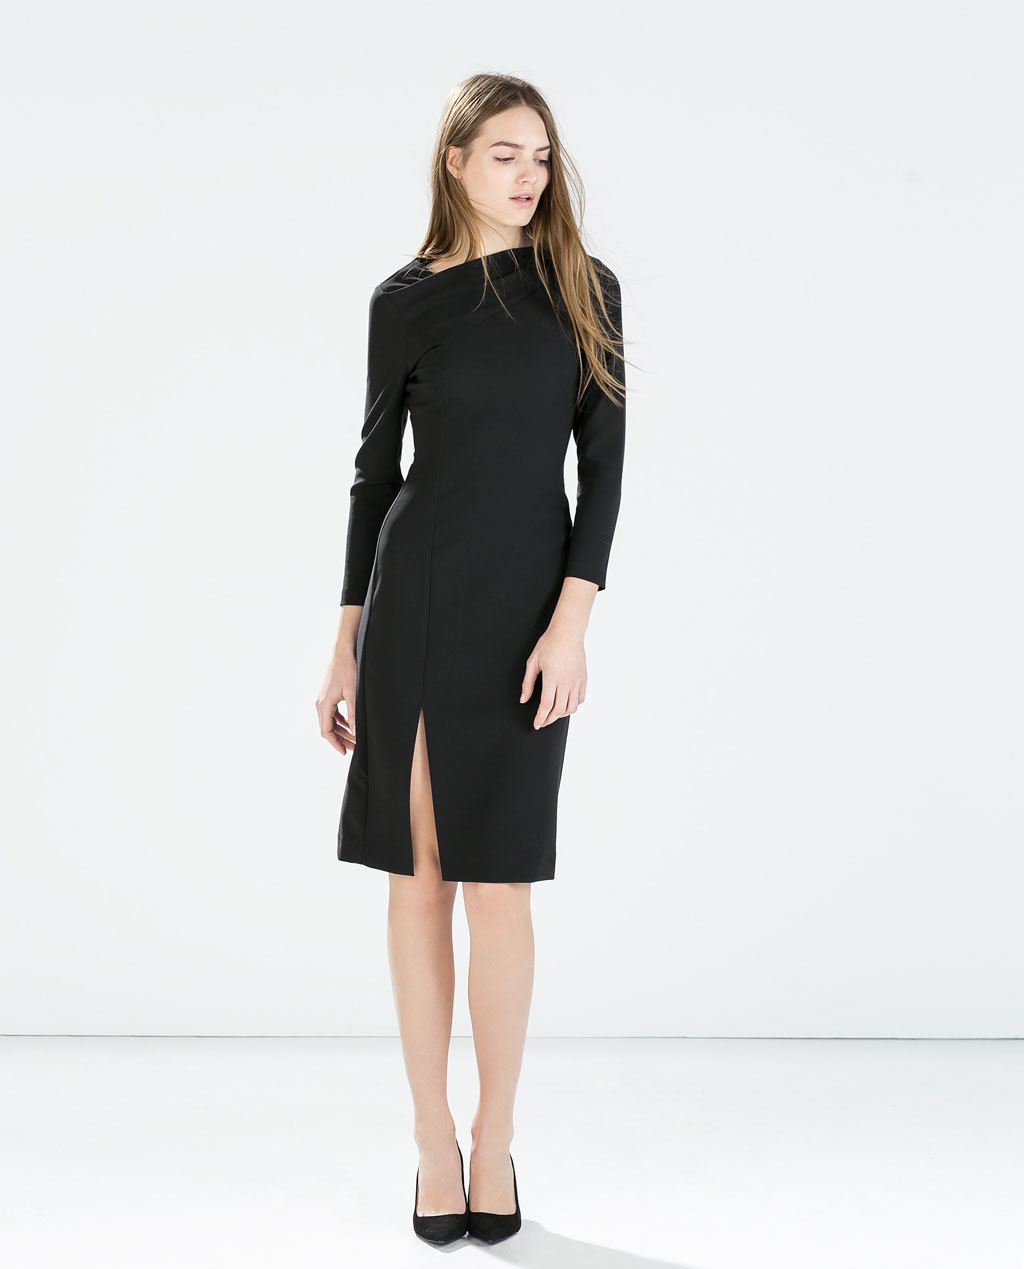 Tube Dress With Tucked Neckline - style: shift; neckline: slash/boat neckline; fit: tailored/fitted; pattern: plain; predominant colour: charcoal; occasions: evening, work, creative work; length: on the knee; fibres: polyester/polyamide - stretch; hip detail: slits at hip; sleeve length: long sleeve; sleeve style: standard; texture group: other - light to midweight; season: a/w 2014; wardrobe: investment